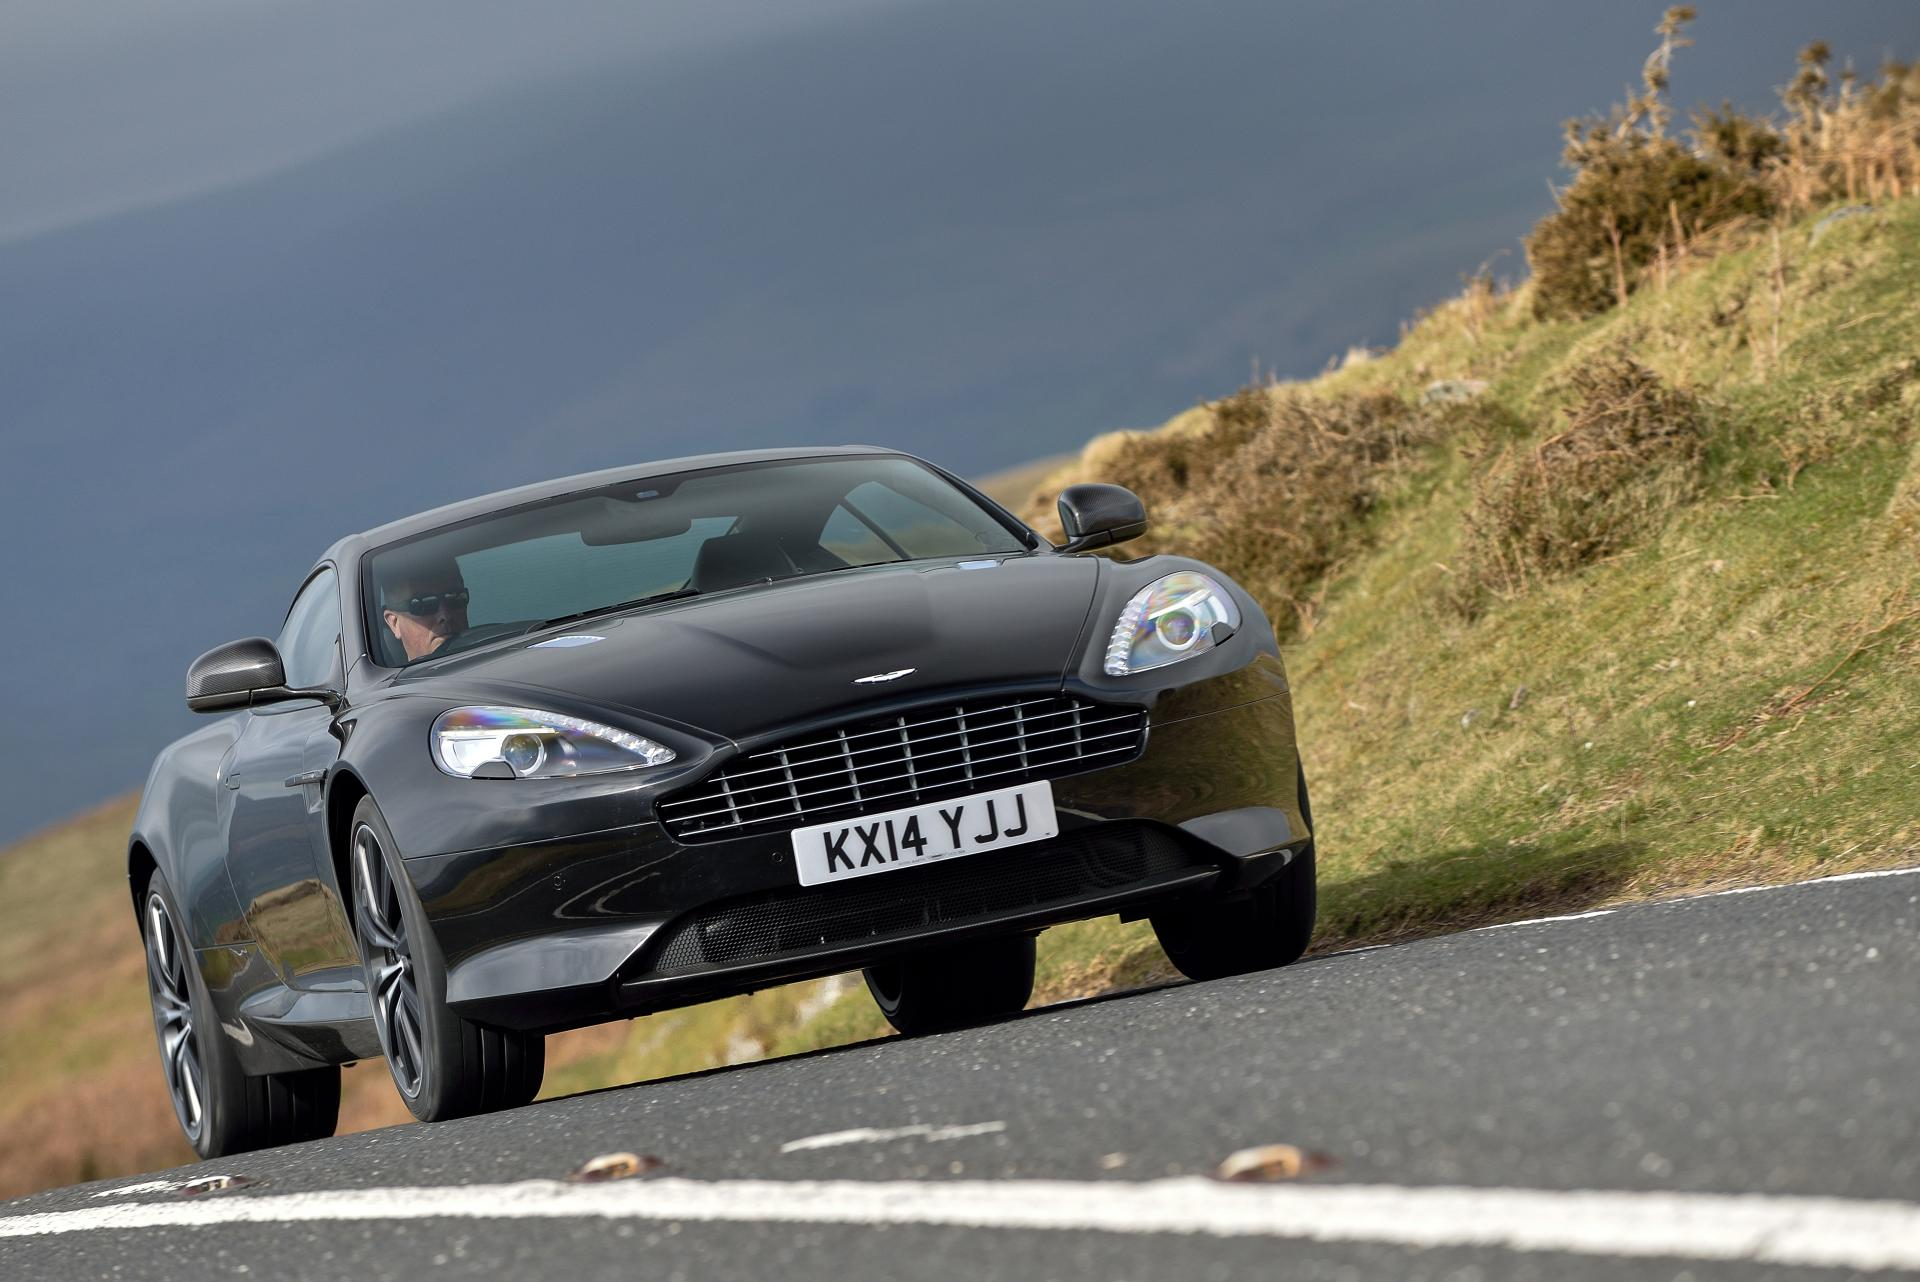 2015 Aston Martin Db9 Carbon Edition News And Information